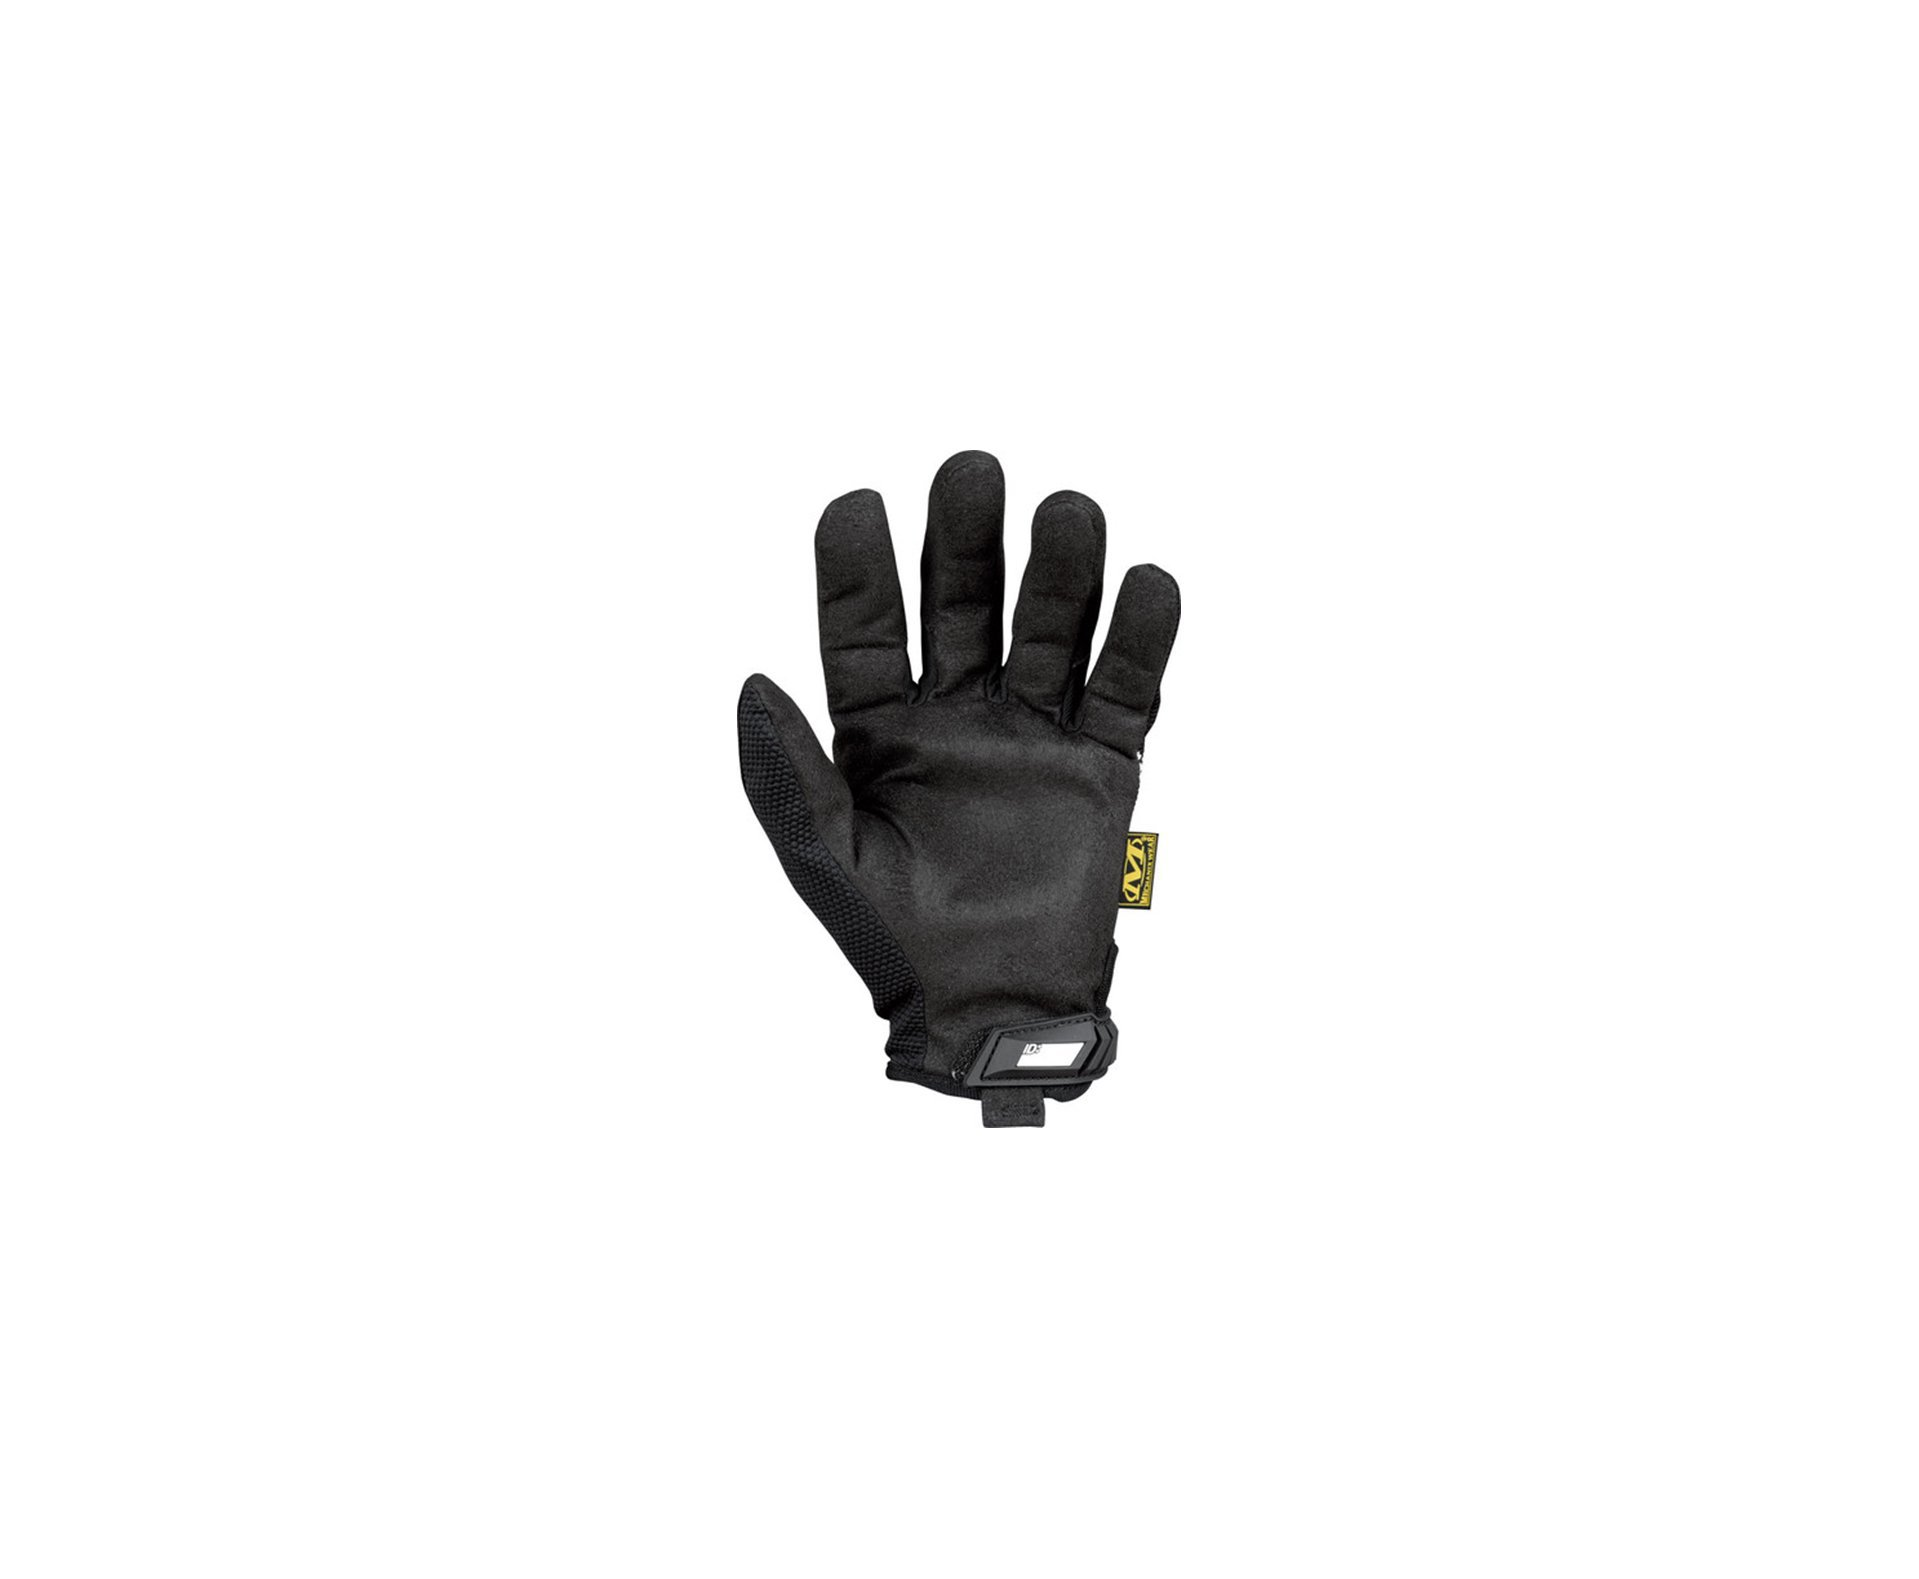 Luva Mechanix Black - P